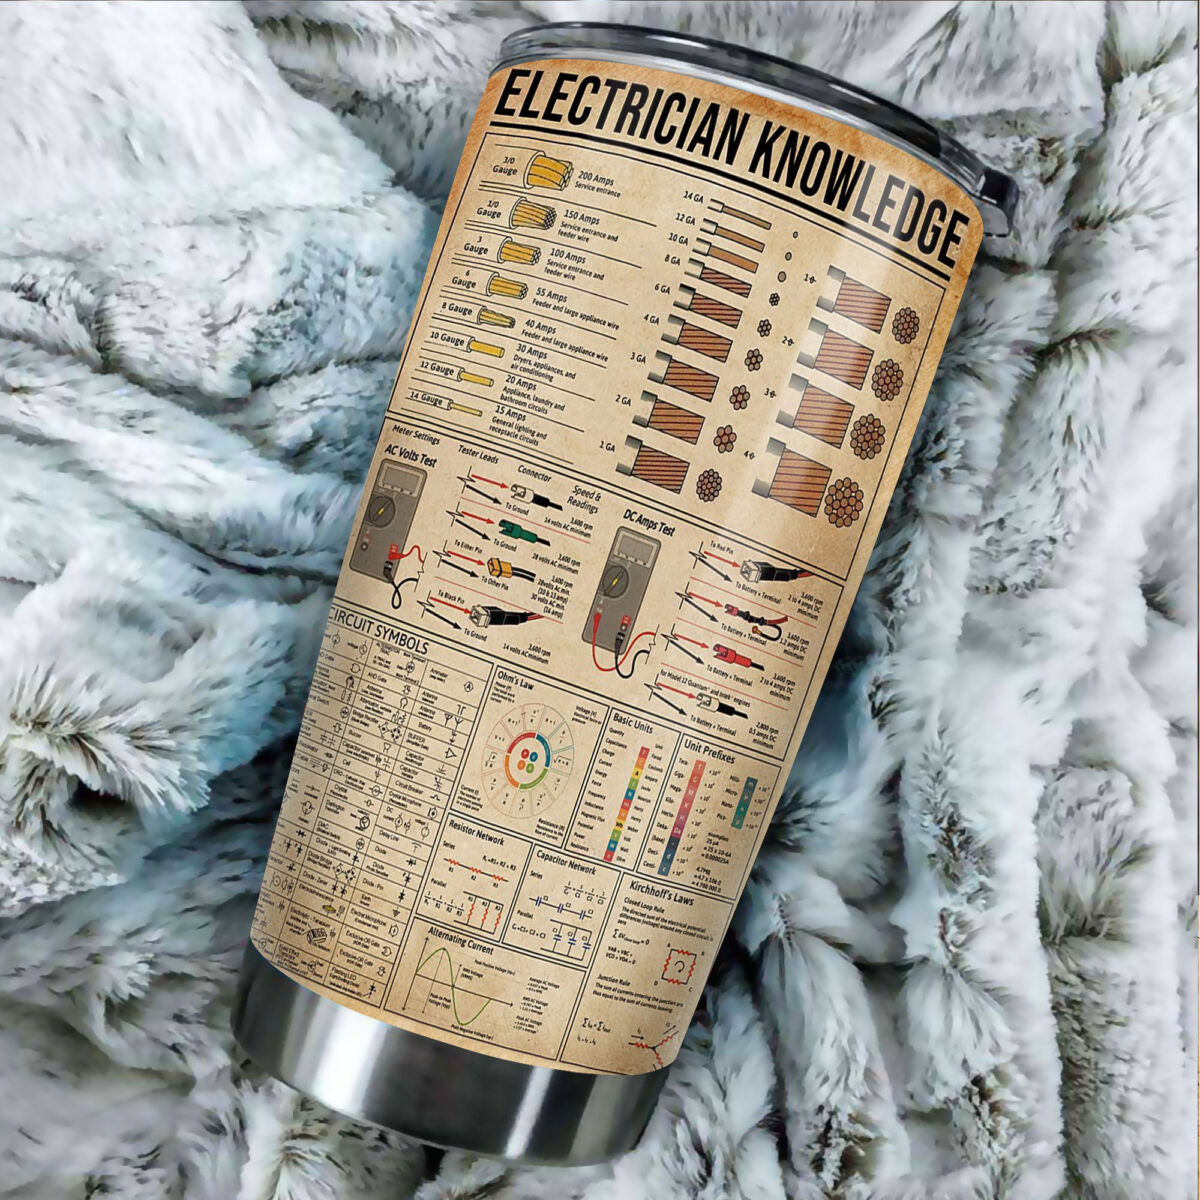 electrician knowledge all over print stainless steel tumbler 5